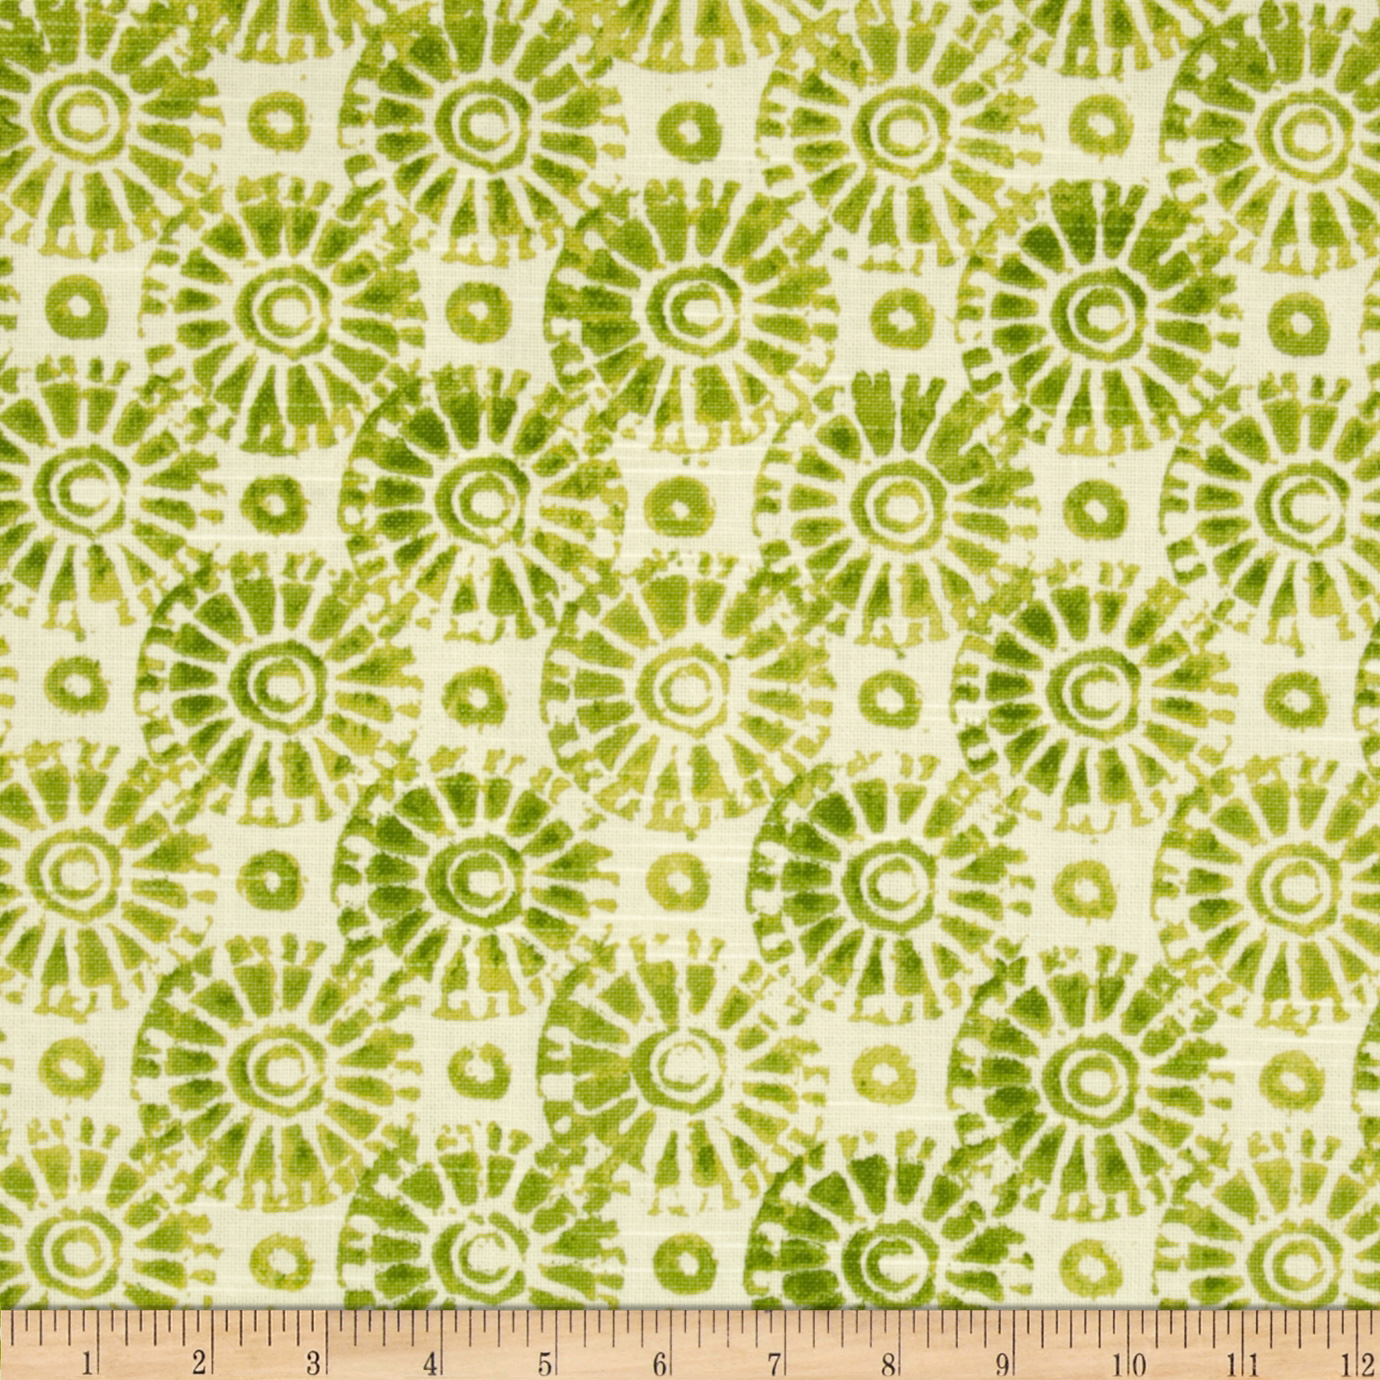 Home Accents Koi Slub Fern Fabric